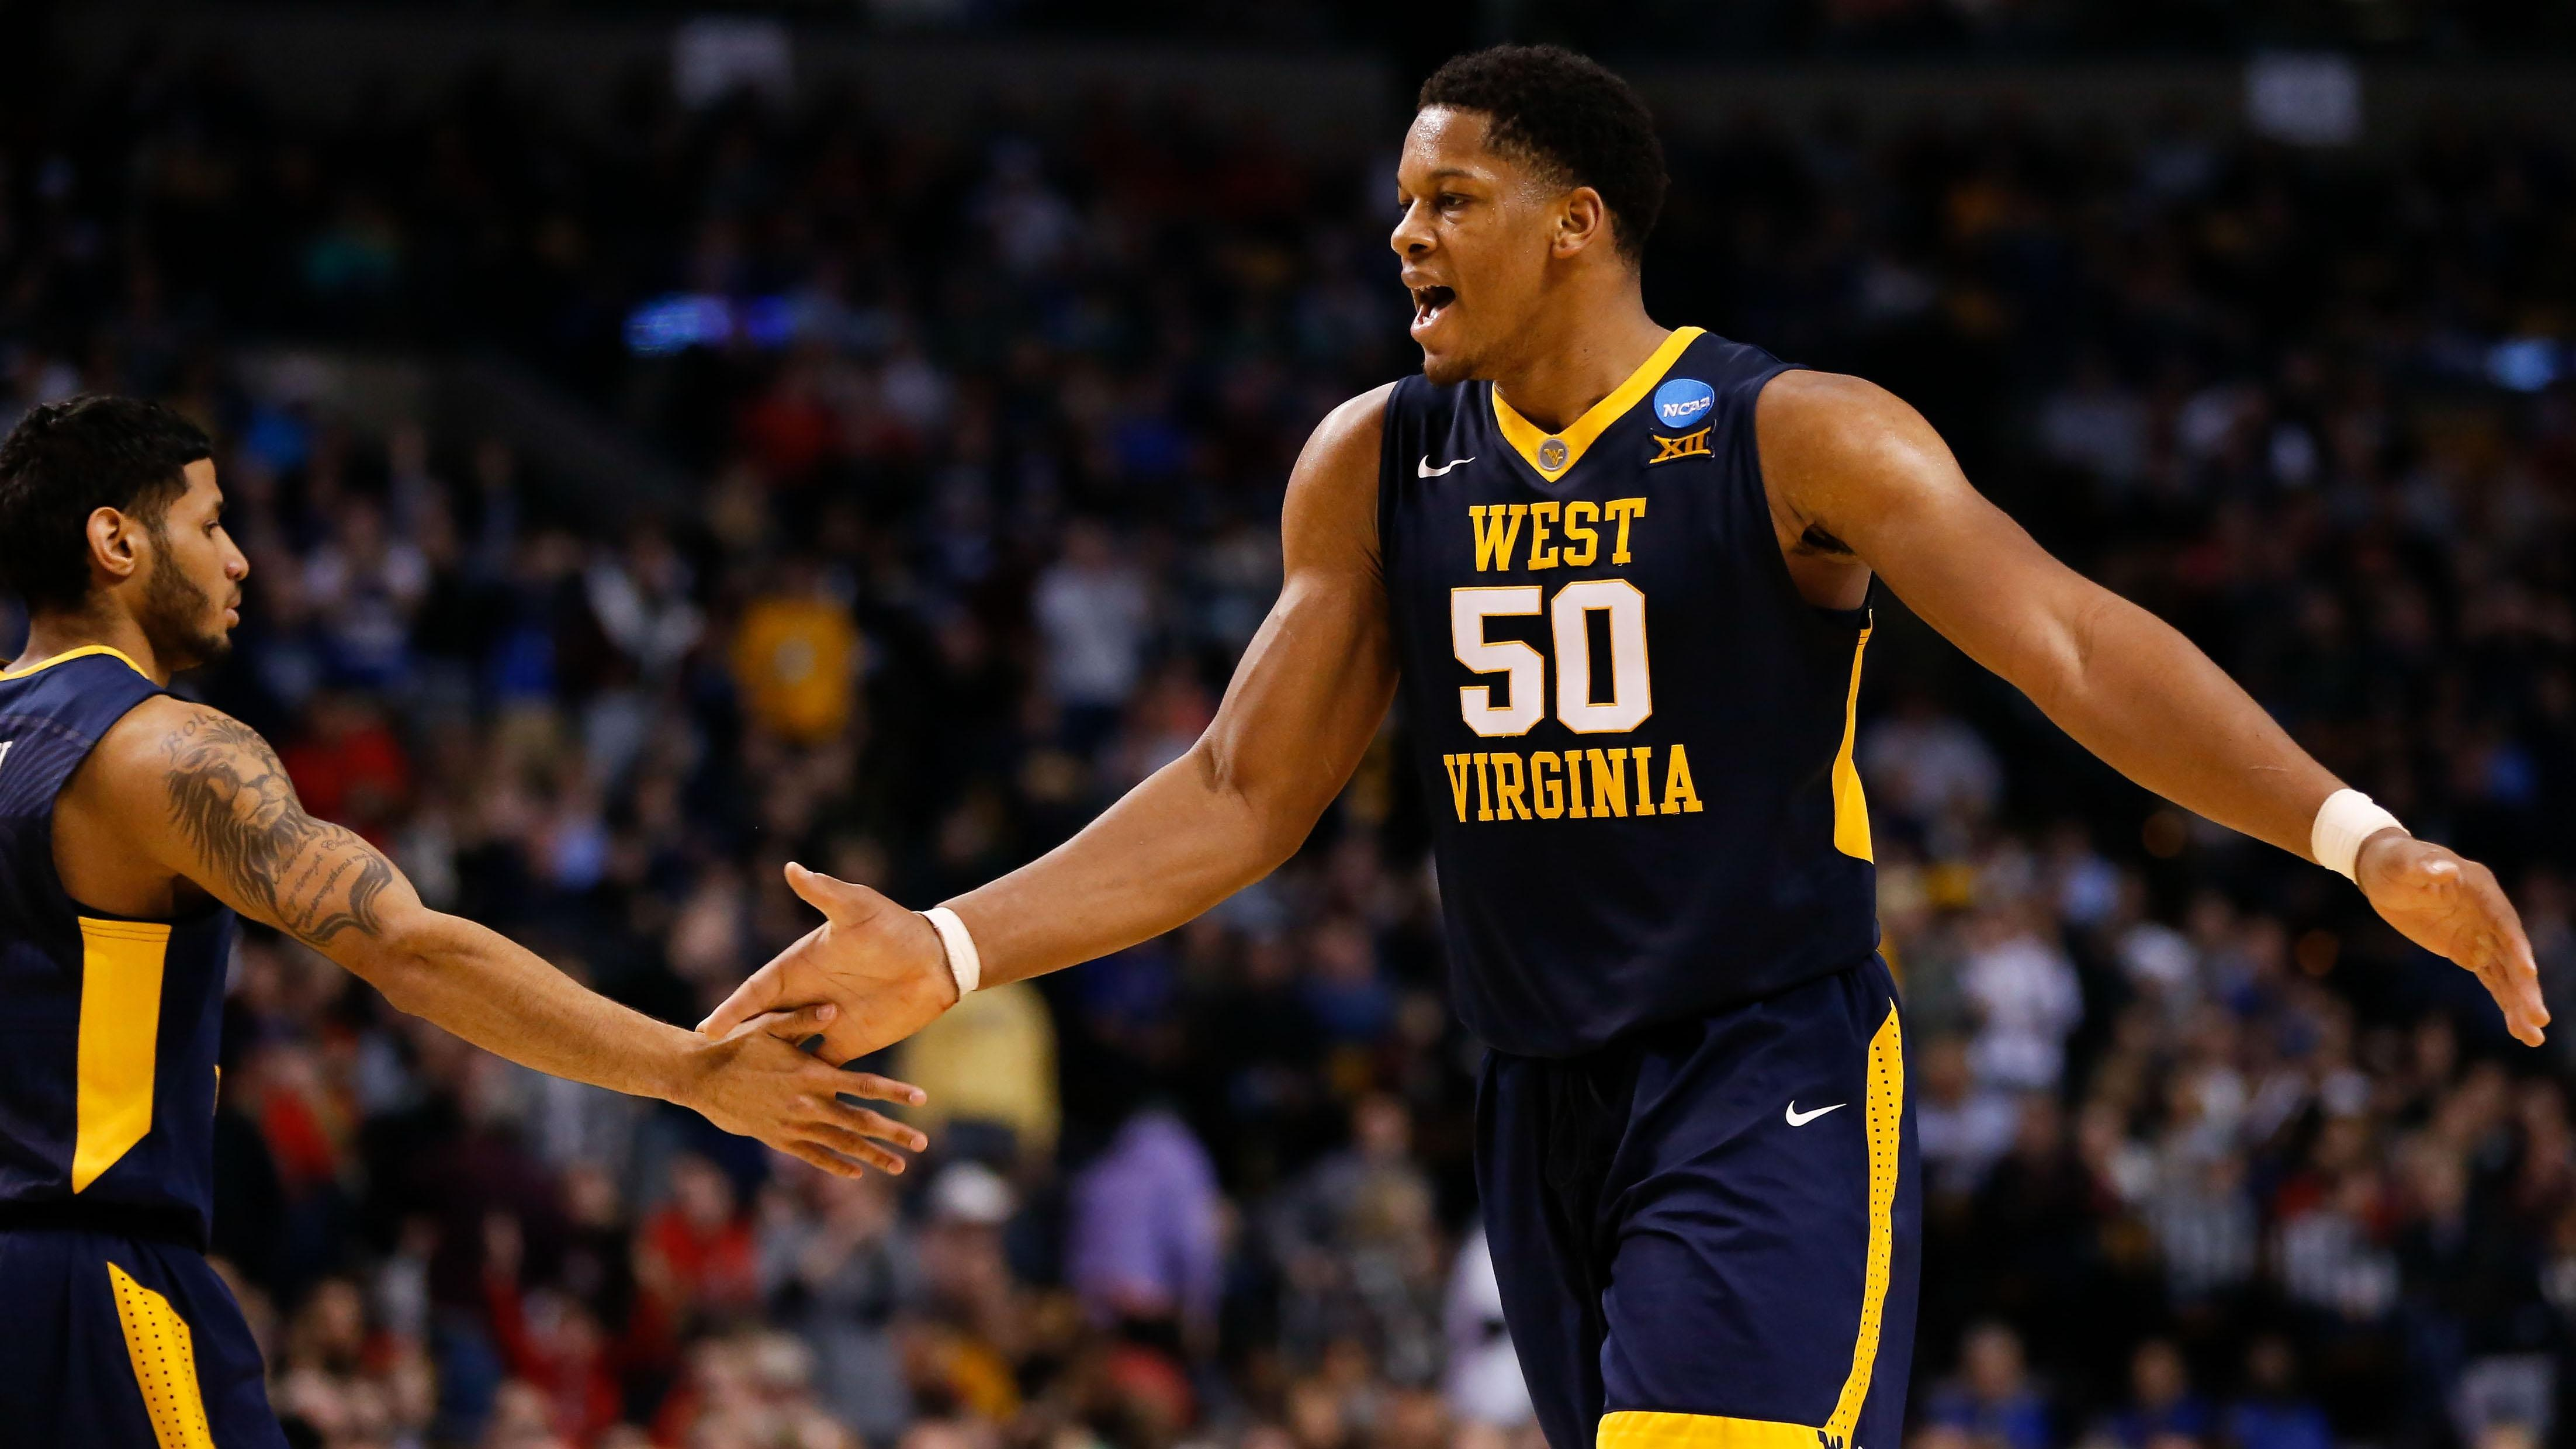 West Virginia's Sagaba Konate high fives a teammate